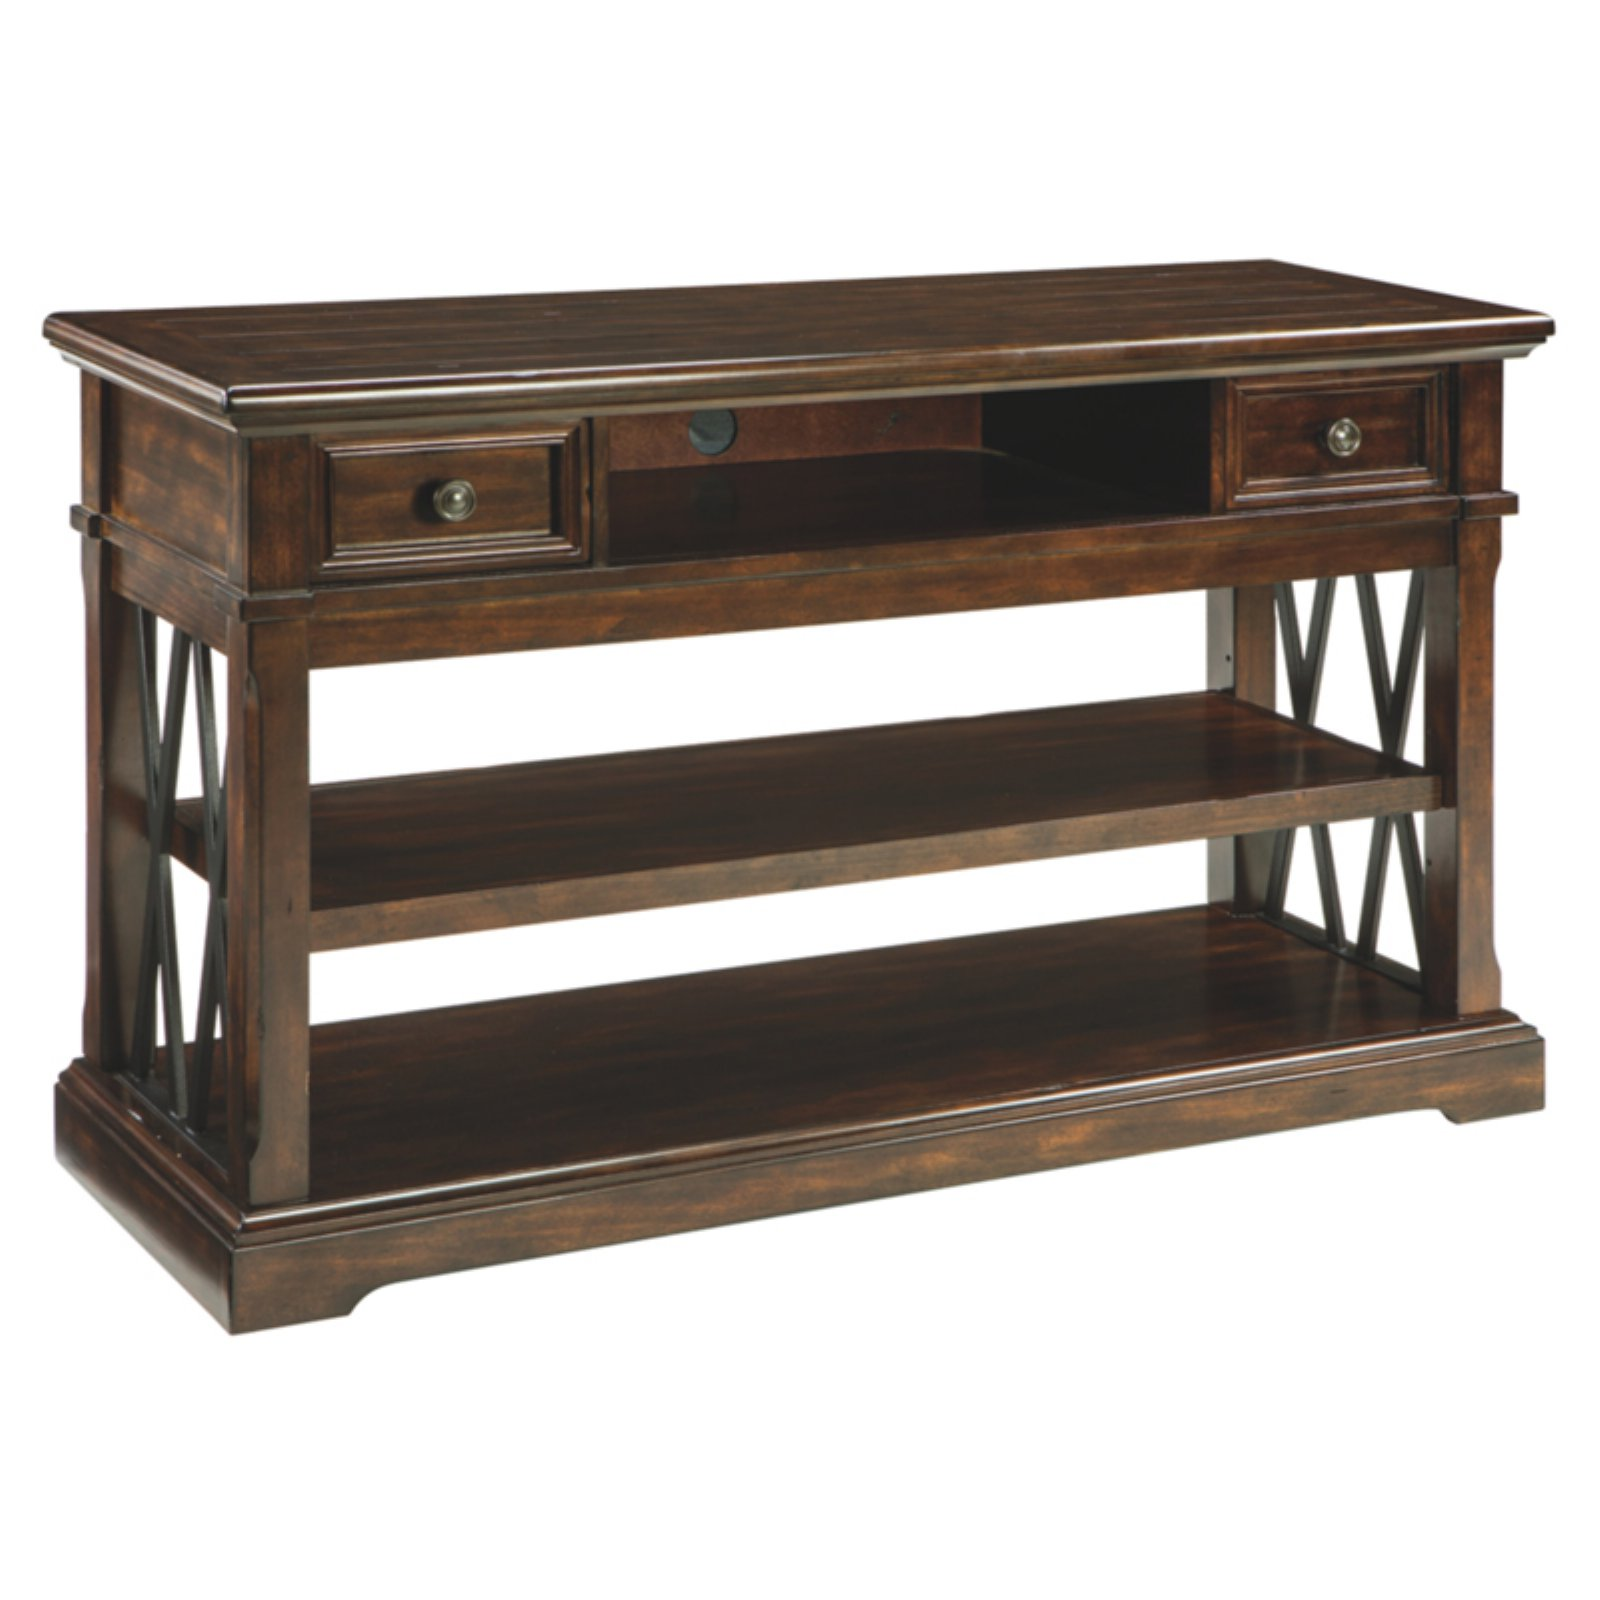 Signature Design By Ashley Roddinton Rectangular 2 Drawer Sofa Table In 2019 Products Traditional Sofa Dark Brown Sofas Sofa Table Design